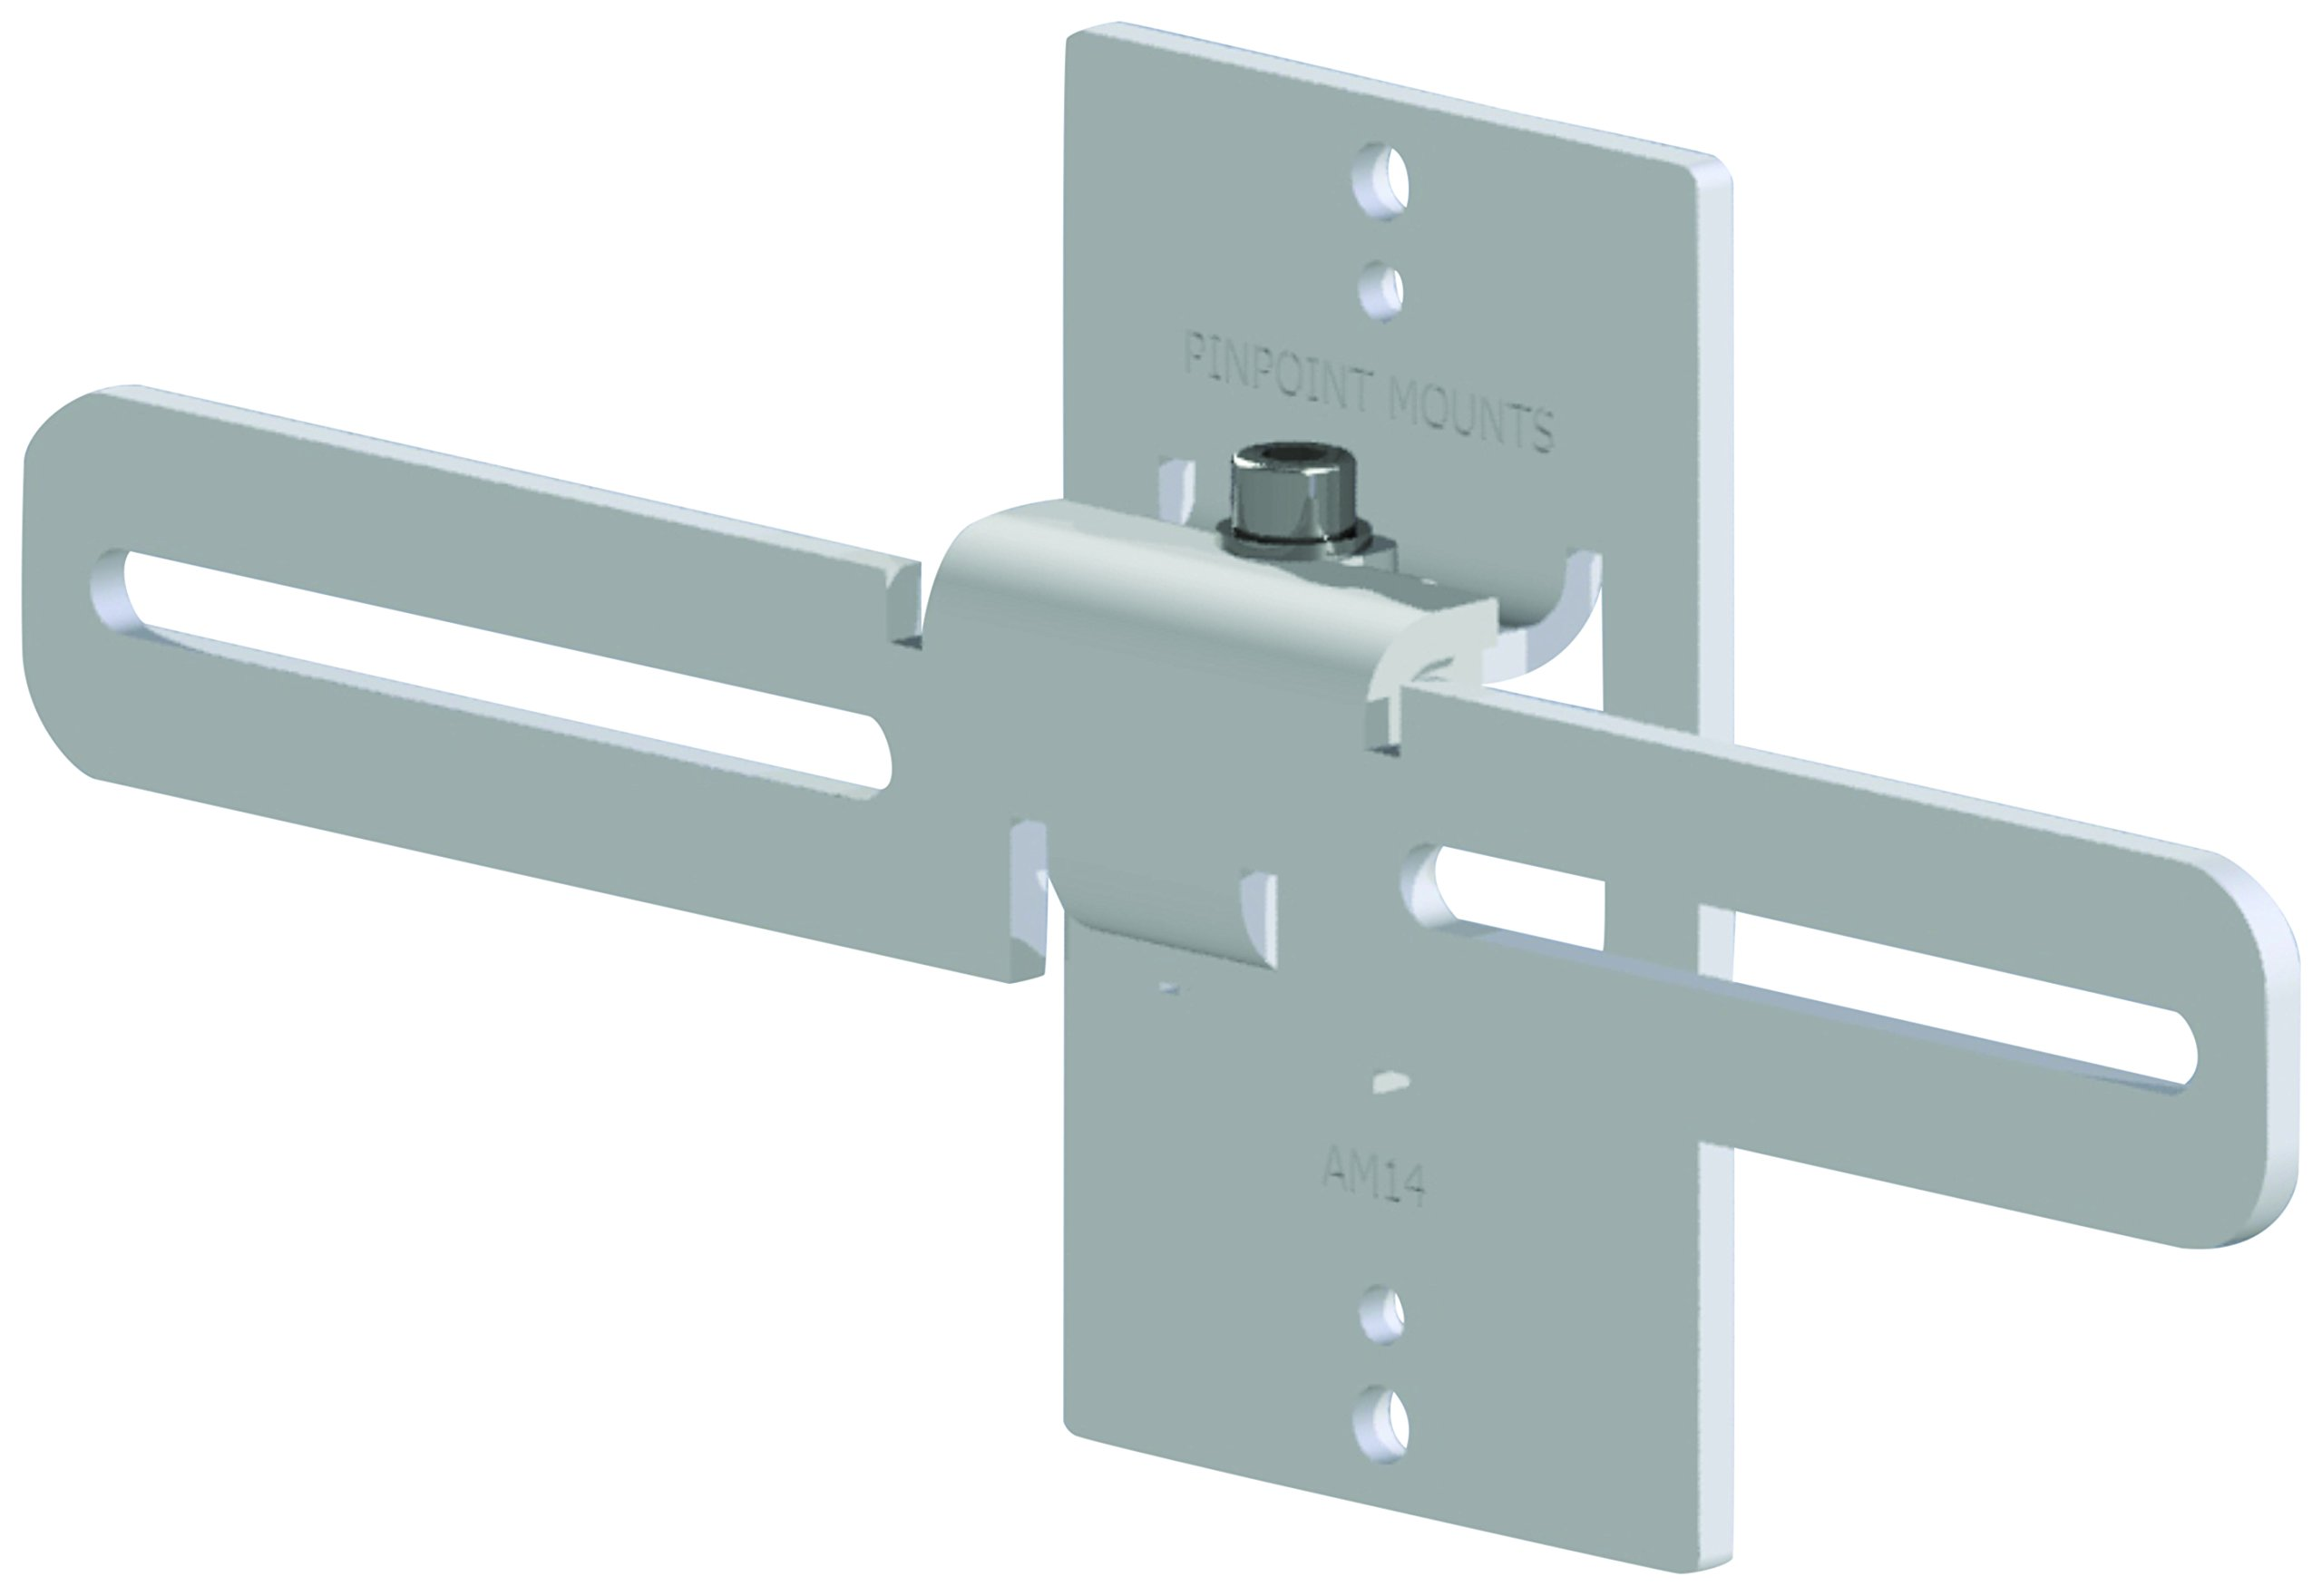 Pinpoint Mounts AM14-WHITE Wall Home Speaker Mount, White